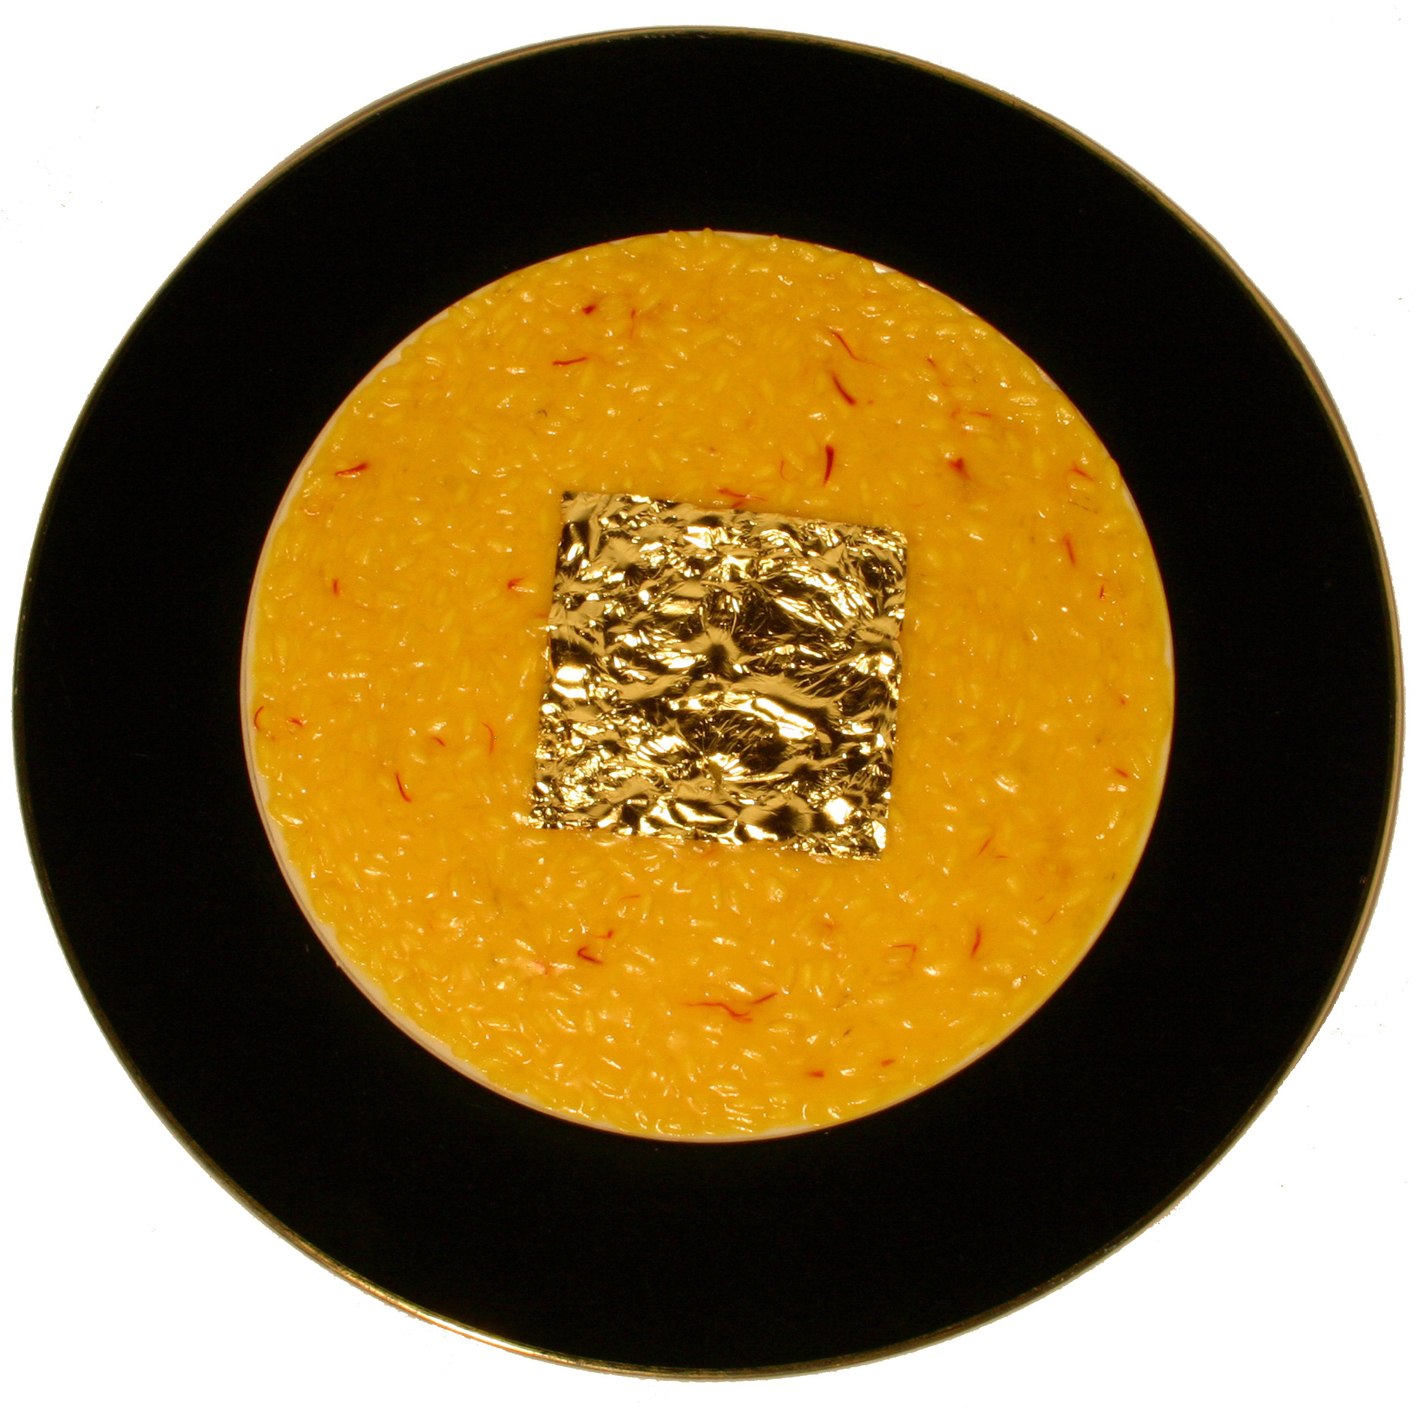 Riso, oro e zafferano / Rice, Gold and Saffron